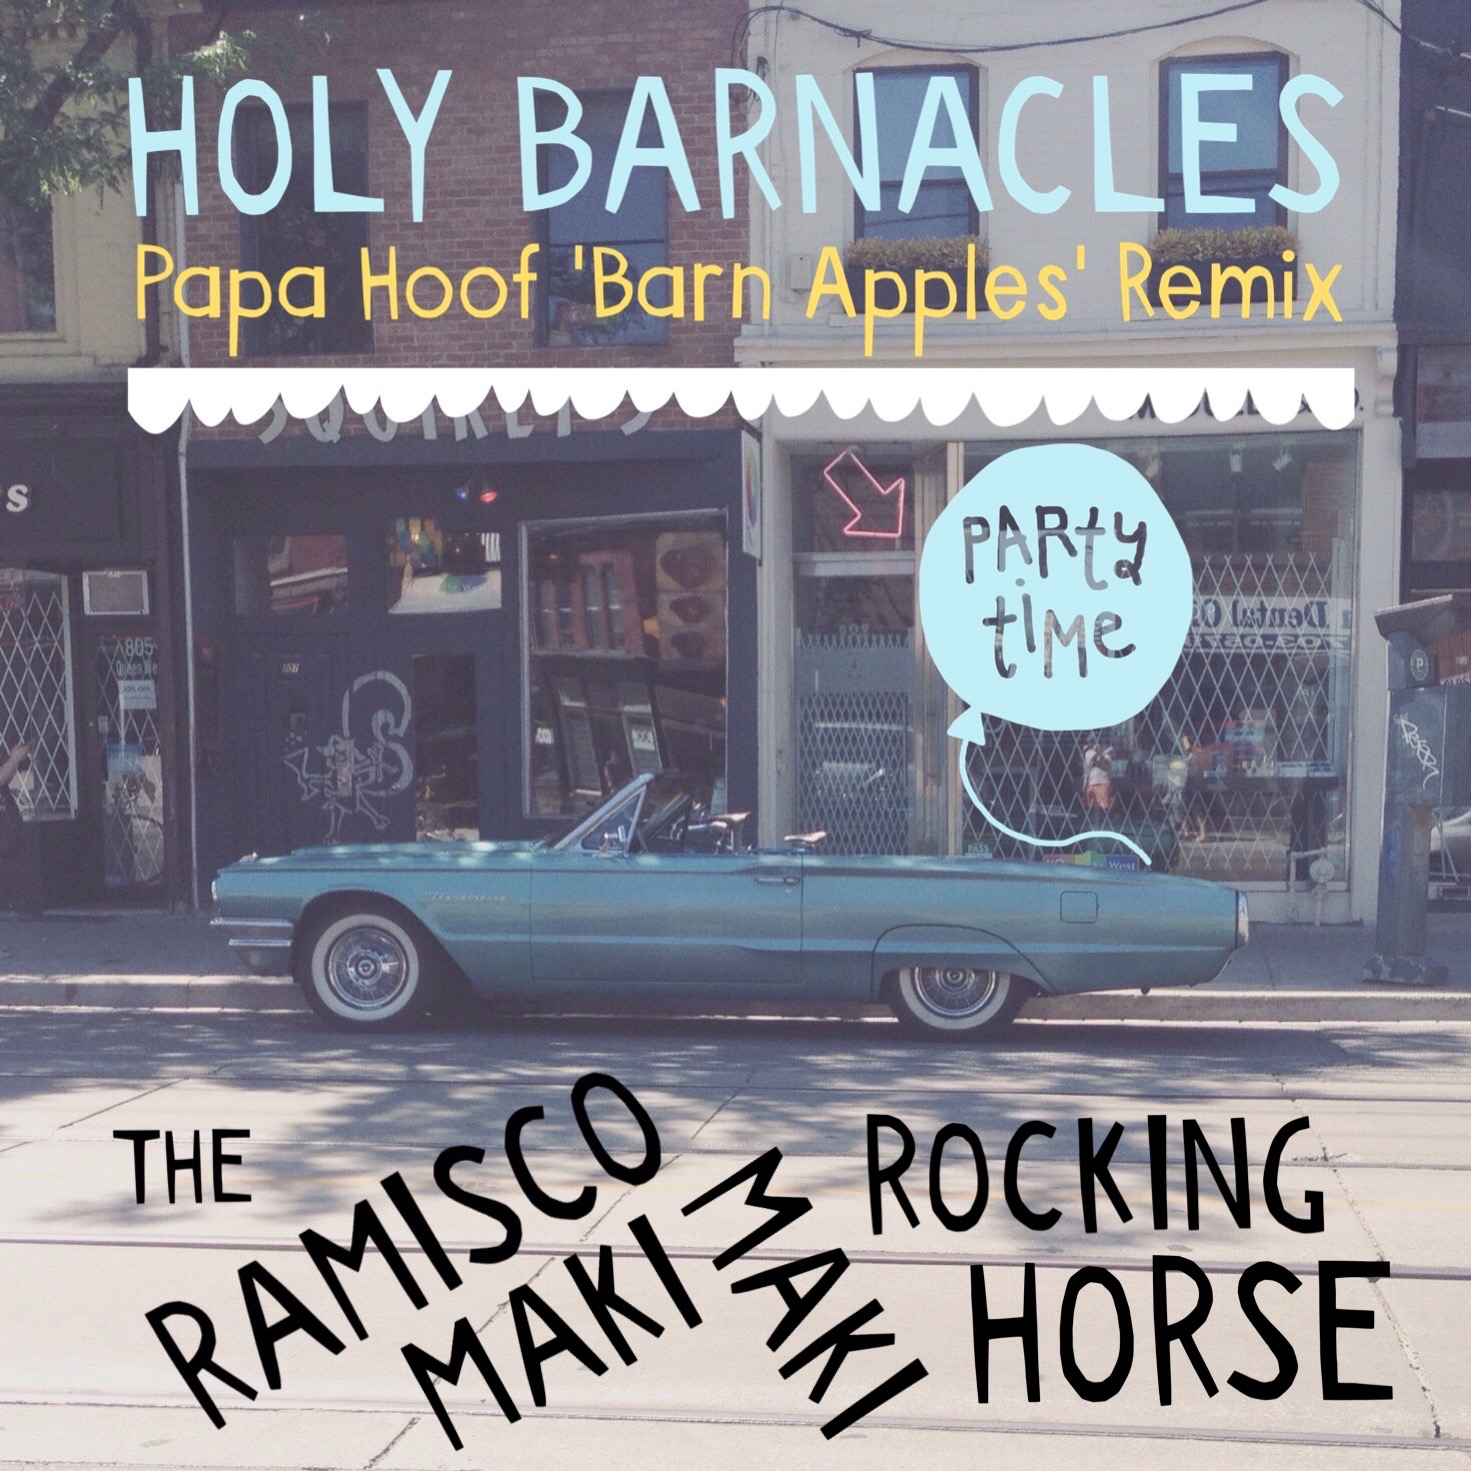 Cover Art for Holy Barnacles (Papa Hoof 'Barn Apples' Remix) by The Ramisco Maki Maki Rocking Horse